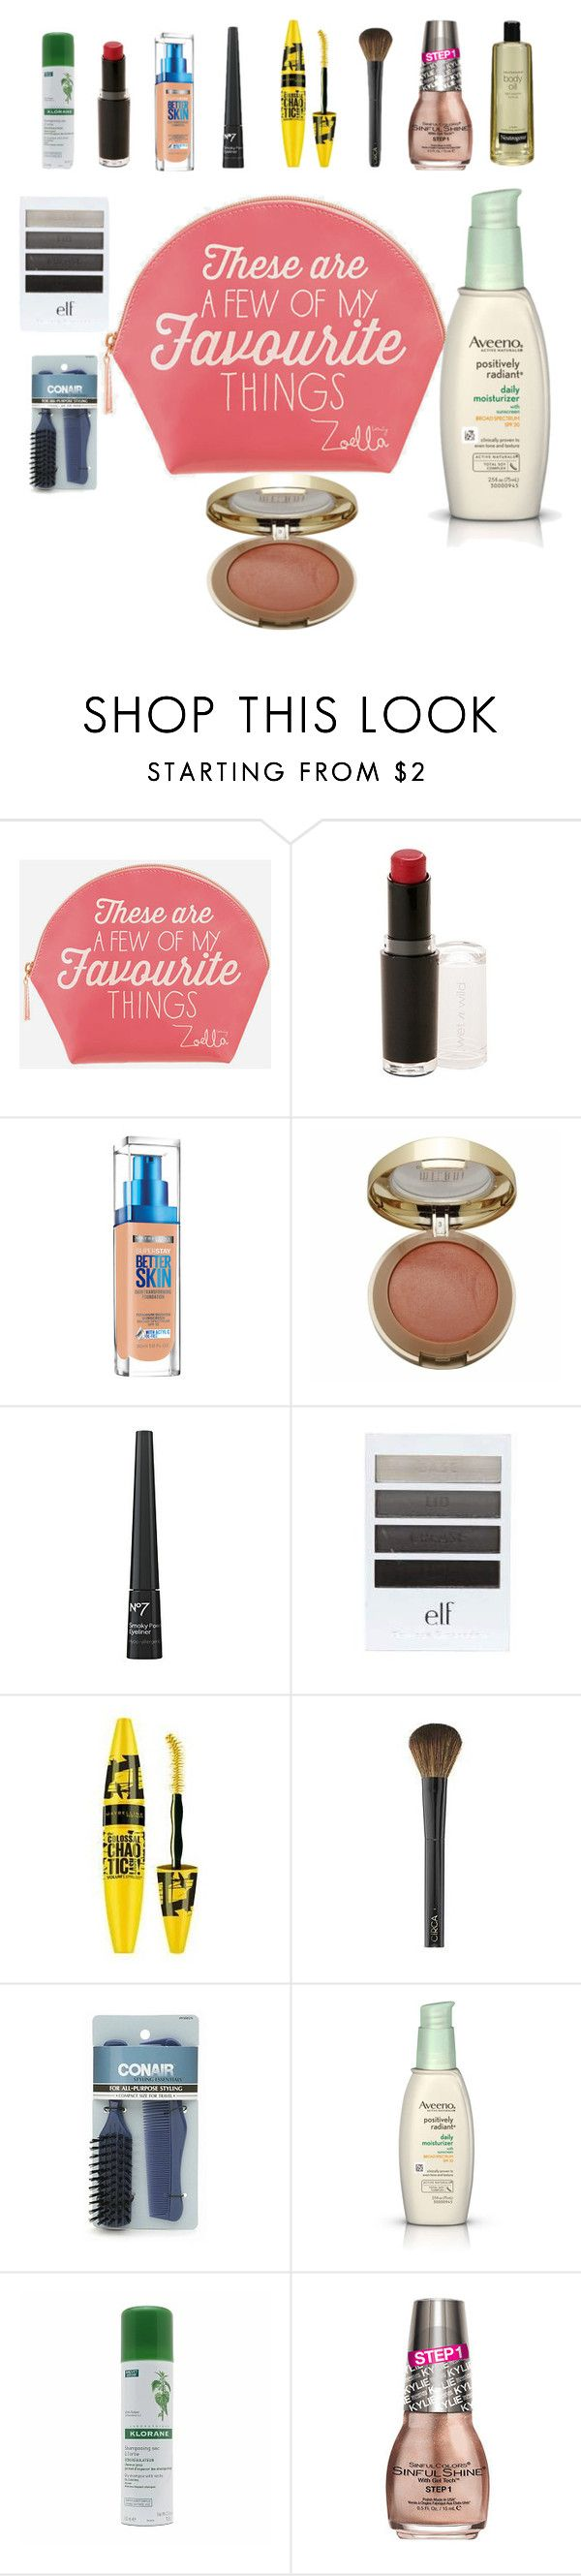 """""""drugstore"""" by aries-indonesia ❤ liked on Polyvore featuring beauty, Zoella Beauty, Wet n Wild, Maybelline, Boots No7, Conair, Aveeno, Klorane, Neutrogena and beautydupes"""